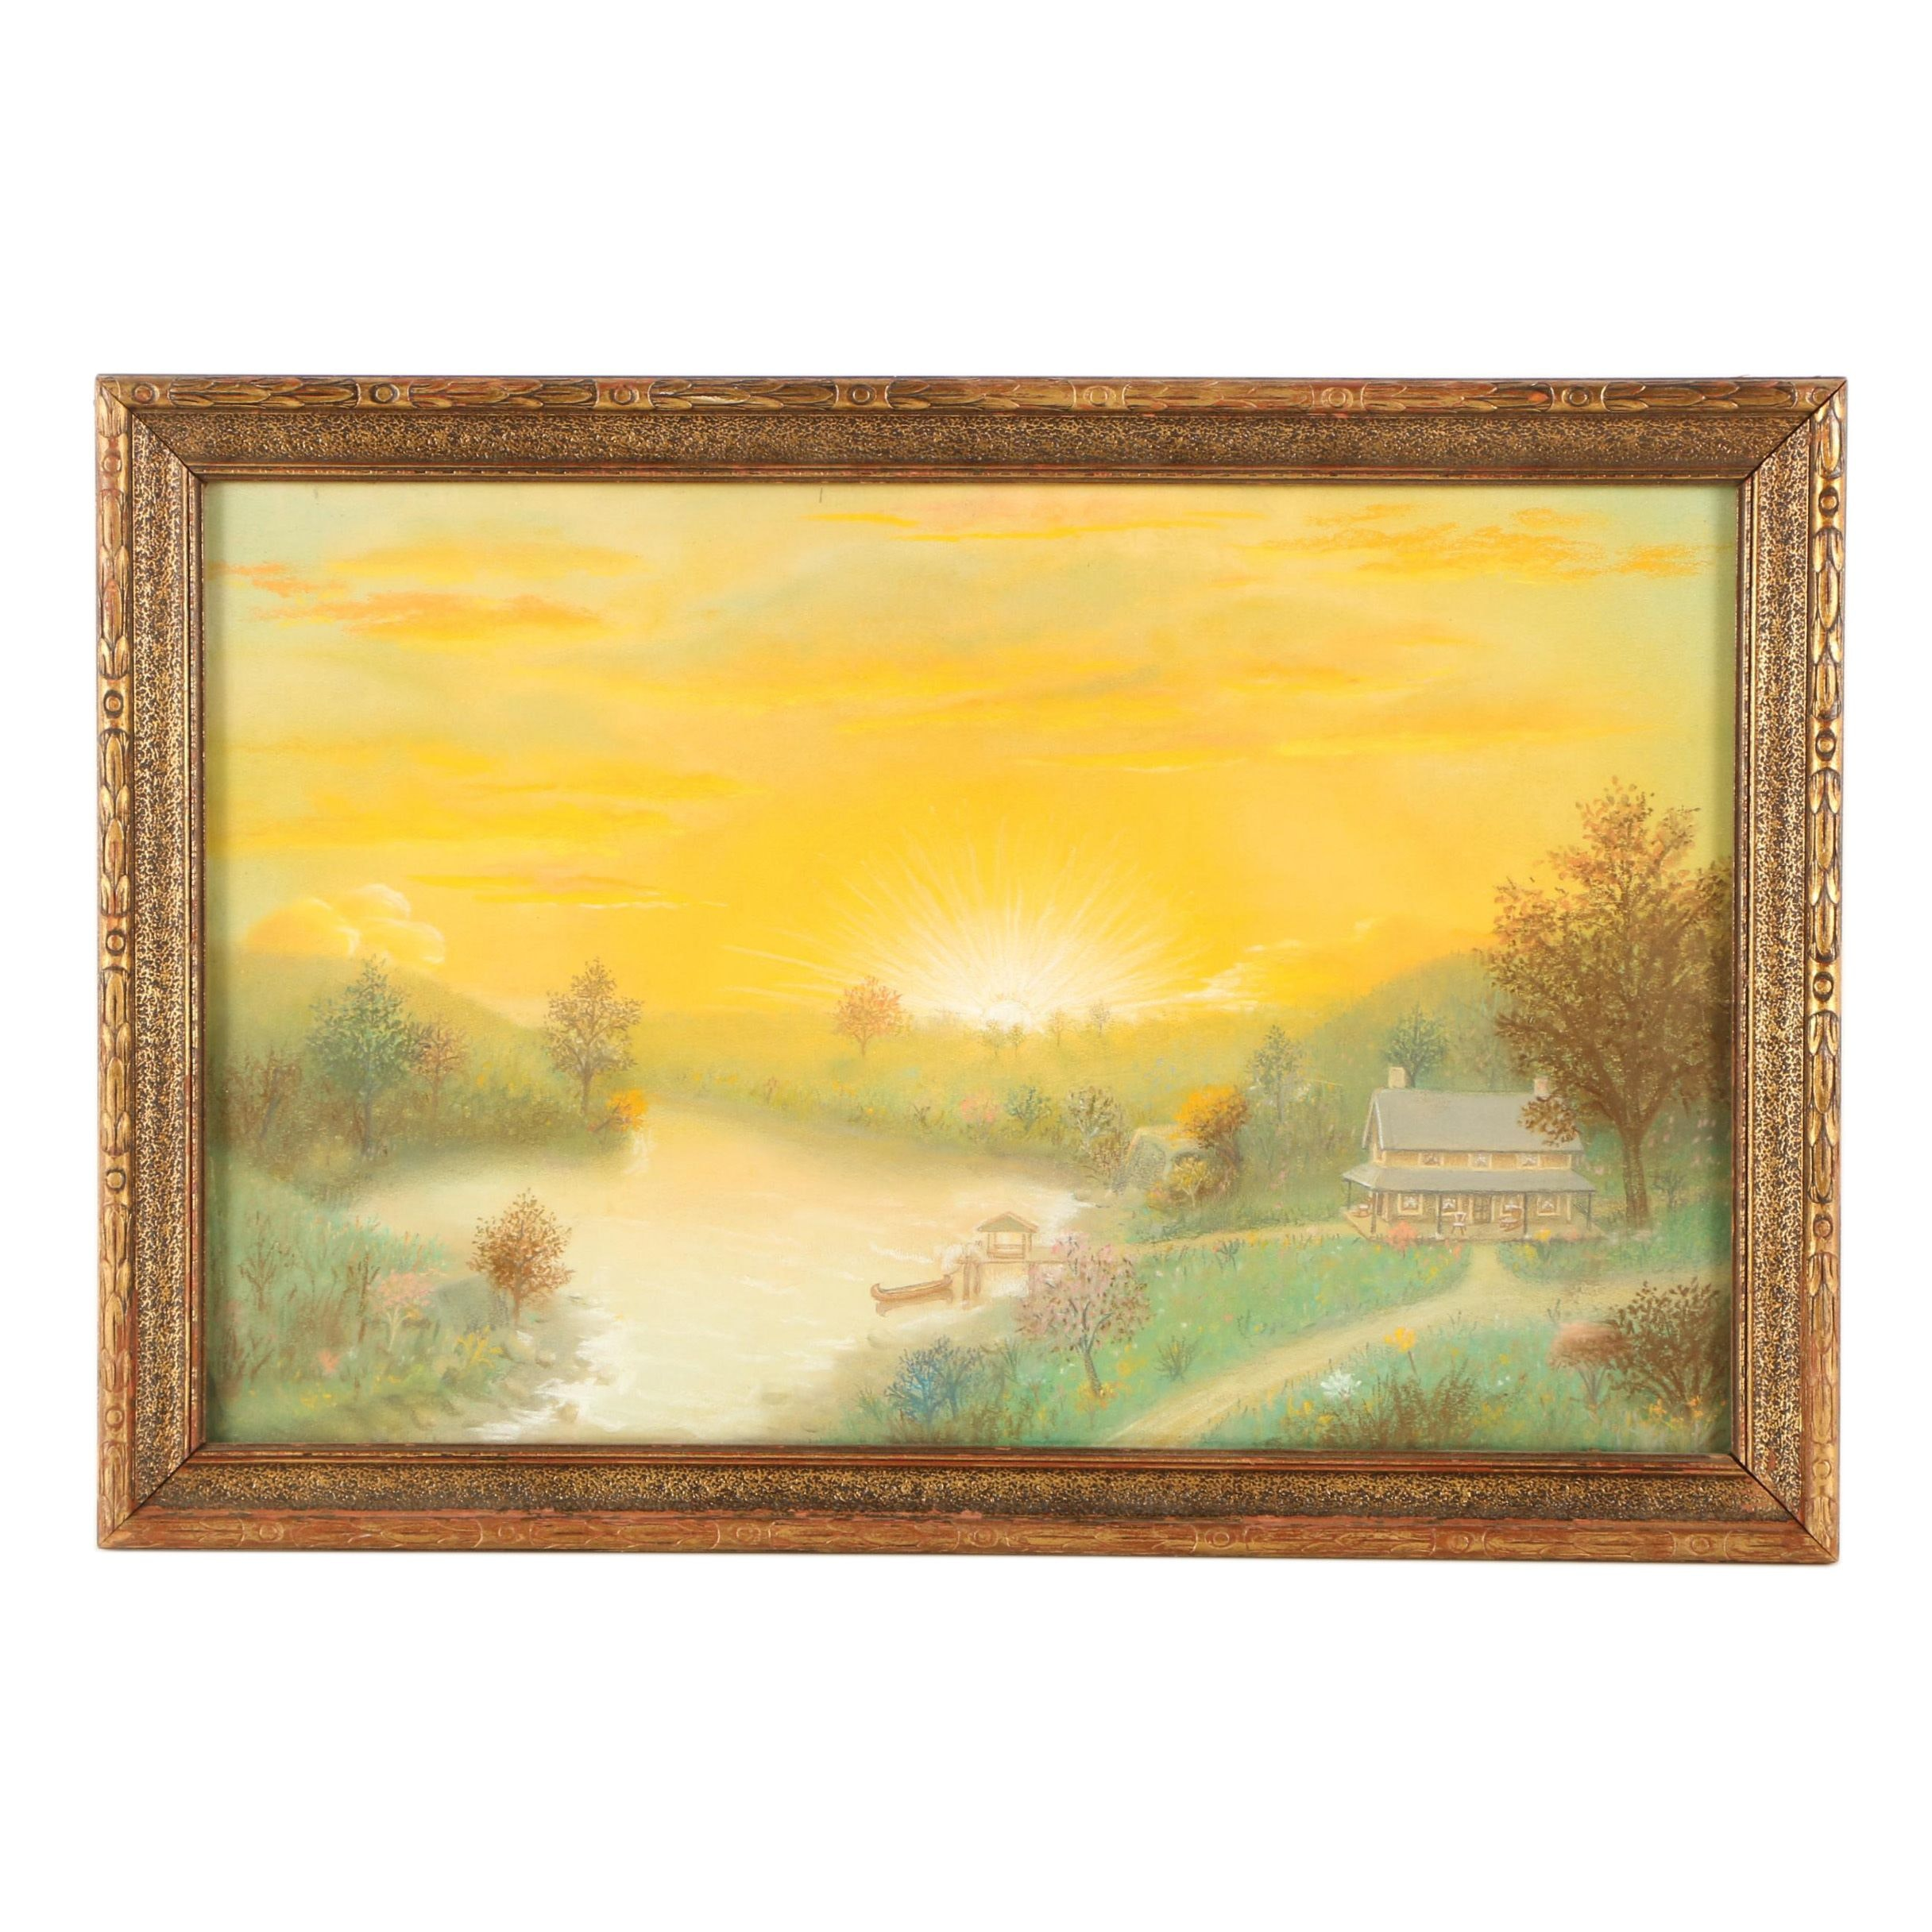 Pastel Drawing of Quaint Country Landscape